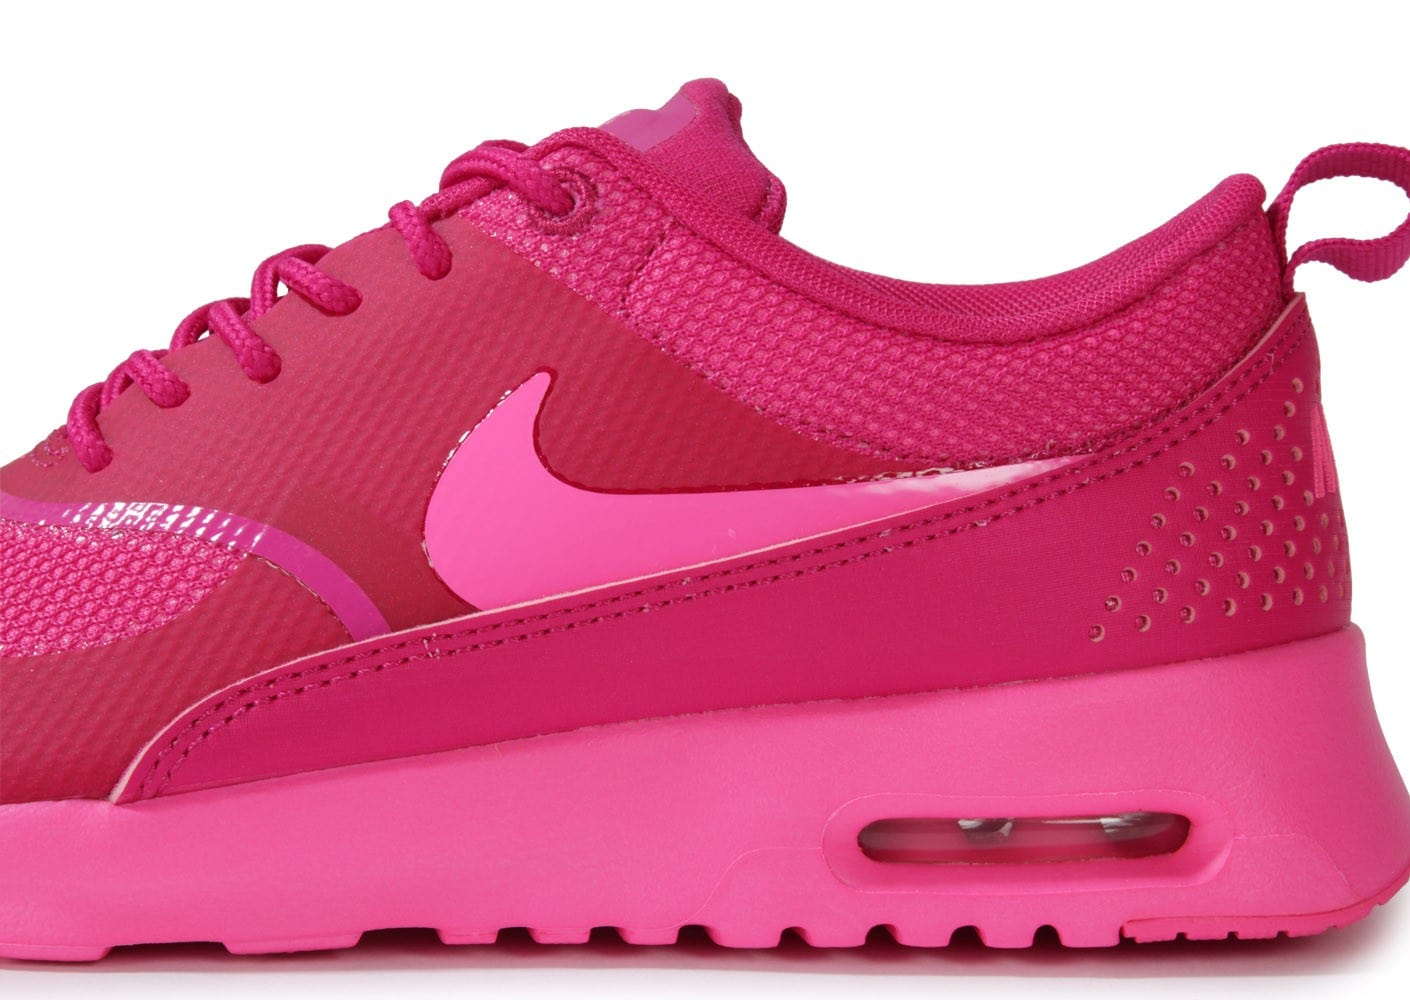 nouveaux styles d6465 810c2 Nike Air Max Thea Rose - Chaussures Chaussures - Chausport